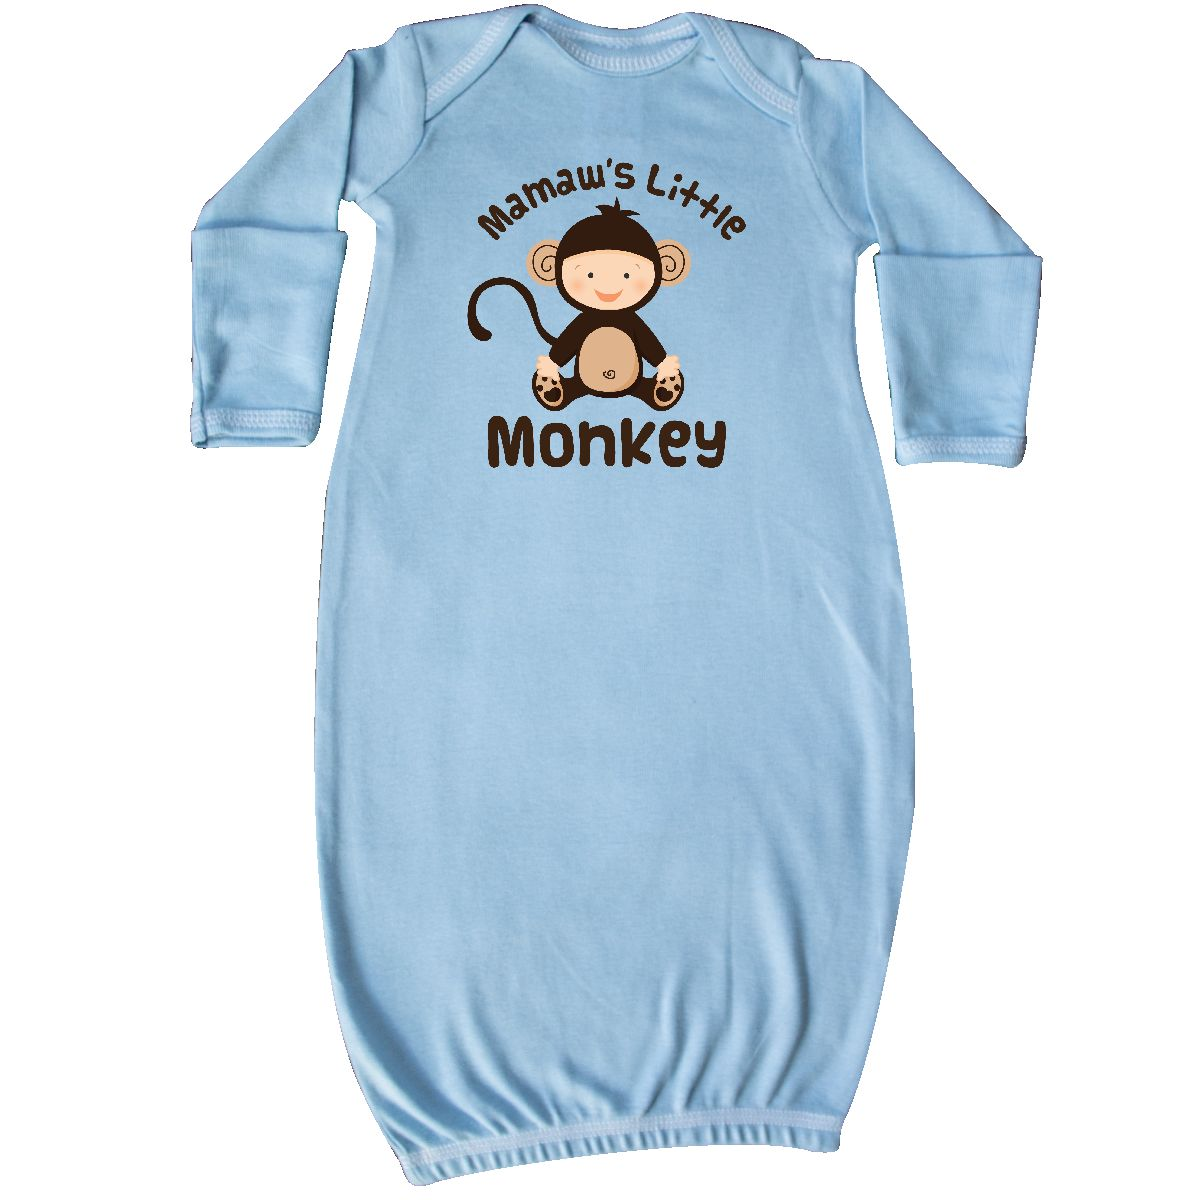 Inktastic Mimi Little Monkey Grandchild Infant Creeper Mimis From Grandson Cute